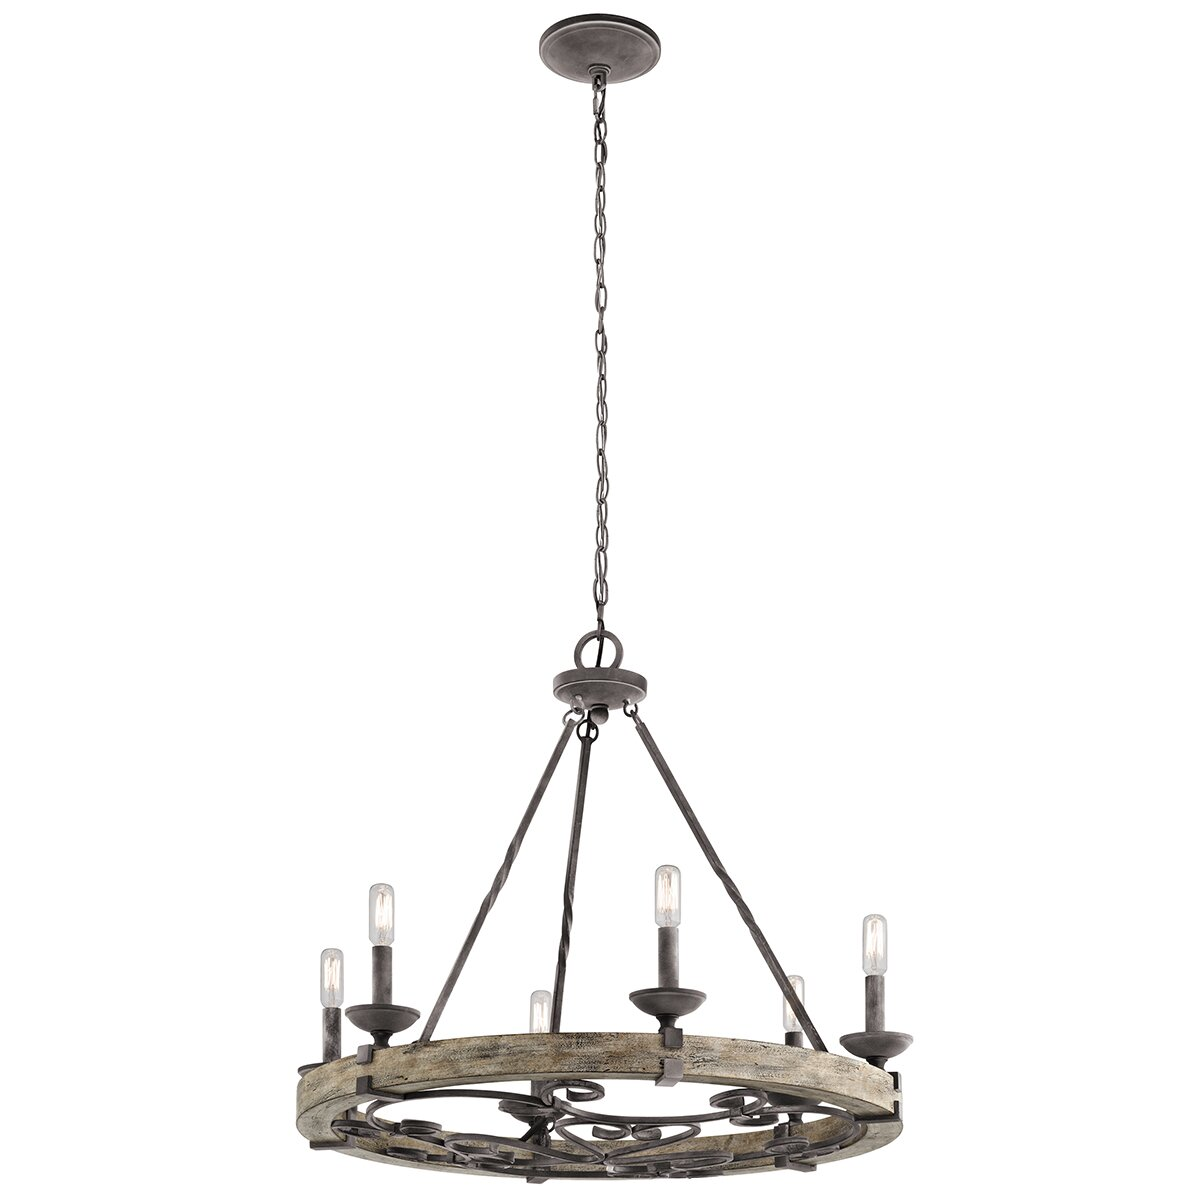 Taulbee 6 Light candle Chandelier